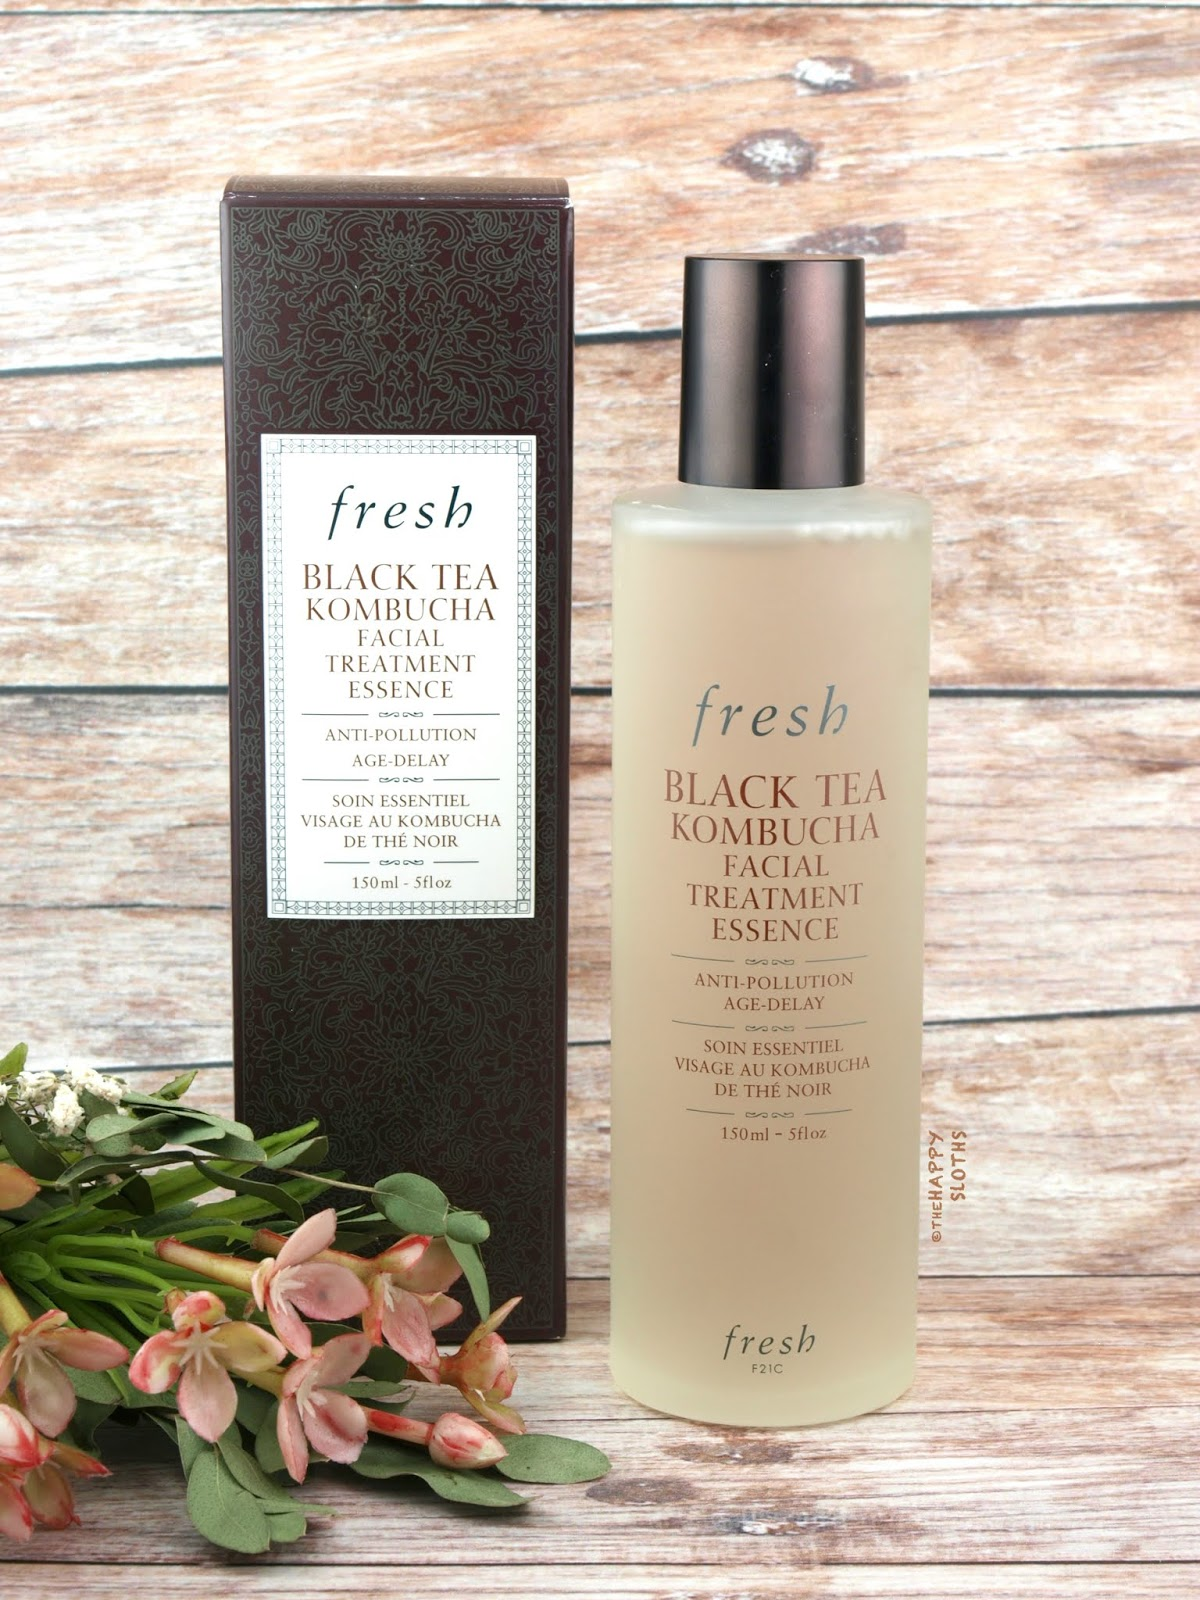 Fresh | Black Tea Kombucha Facial Treatment Essence: Review